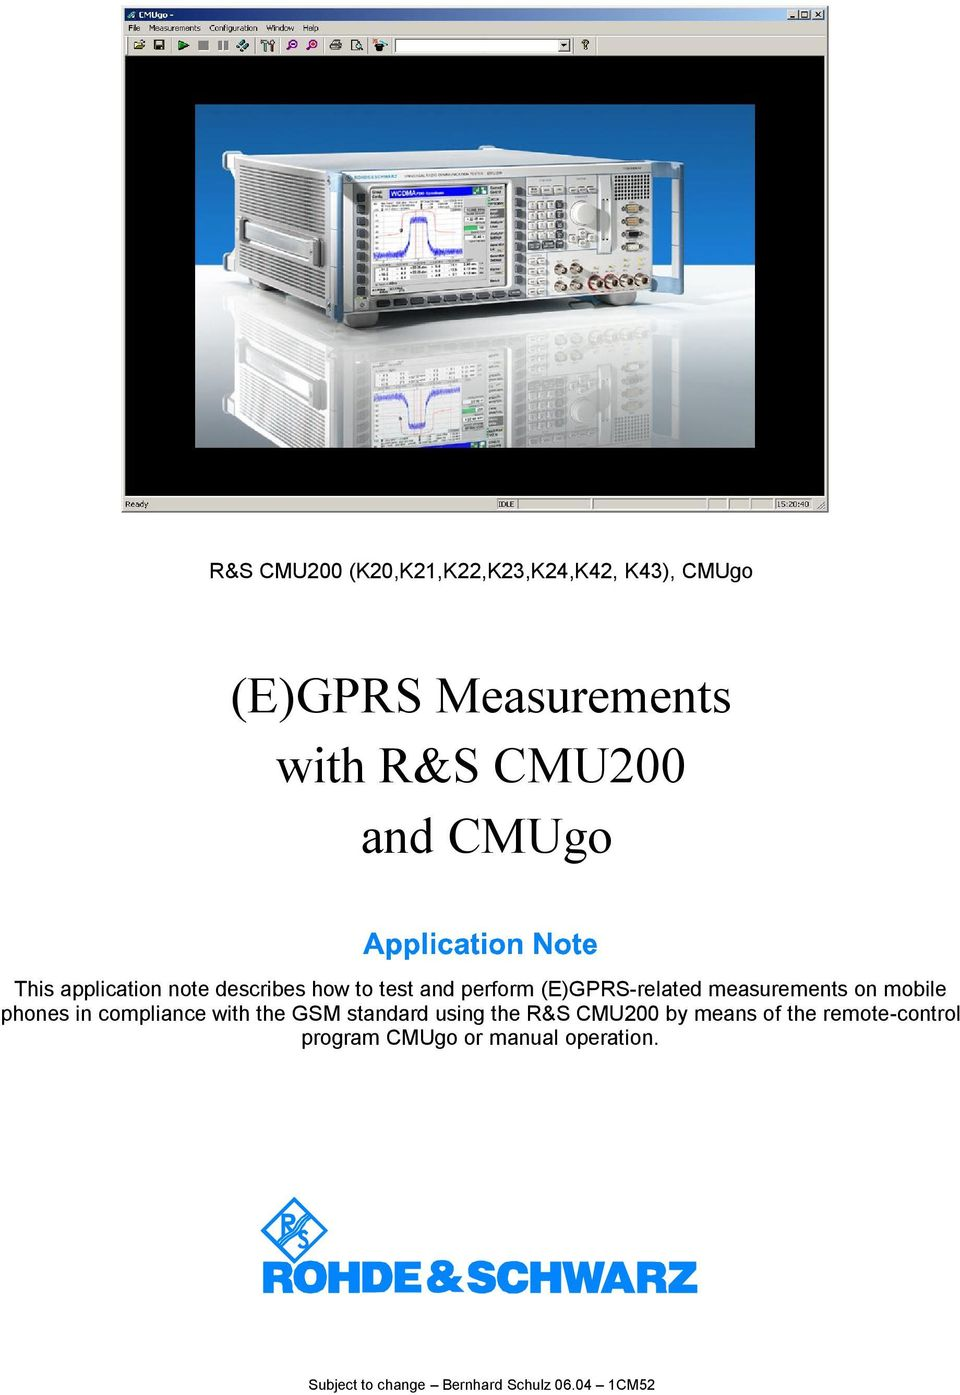 on mobile phones in compliance with the GSM standard using the R&S CMU200 by means of the